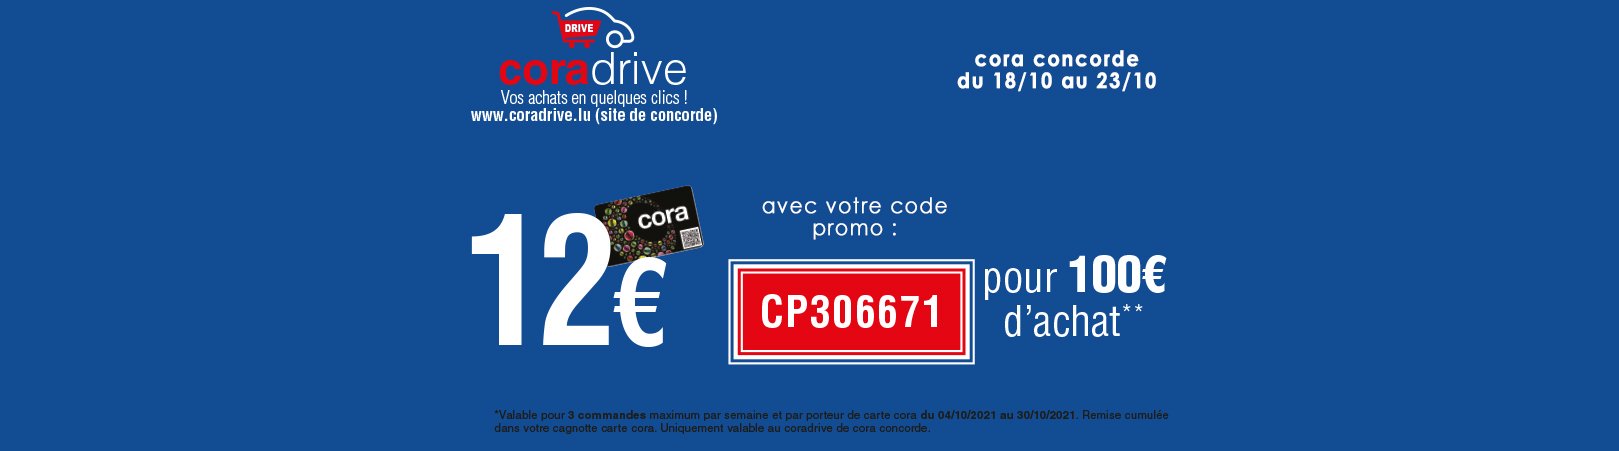 Offre coradrive